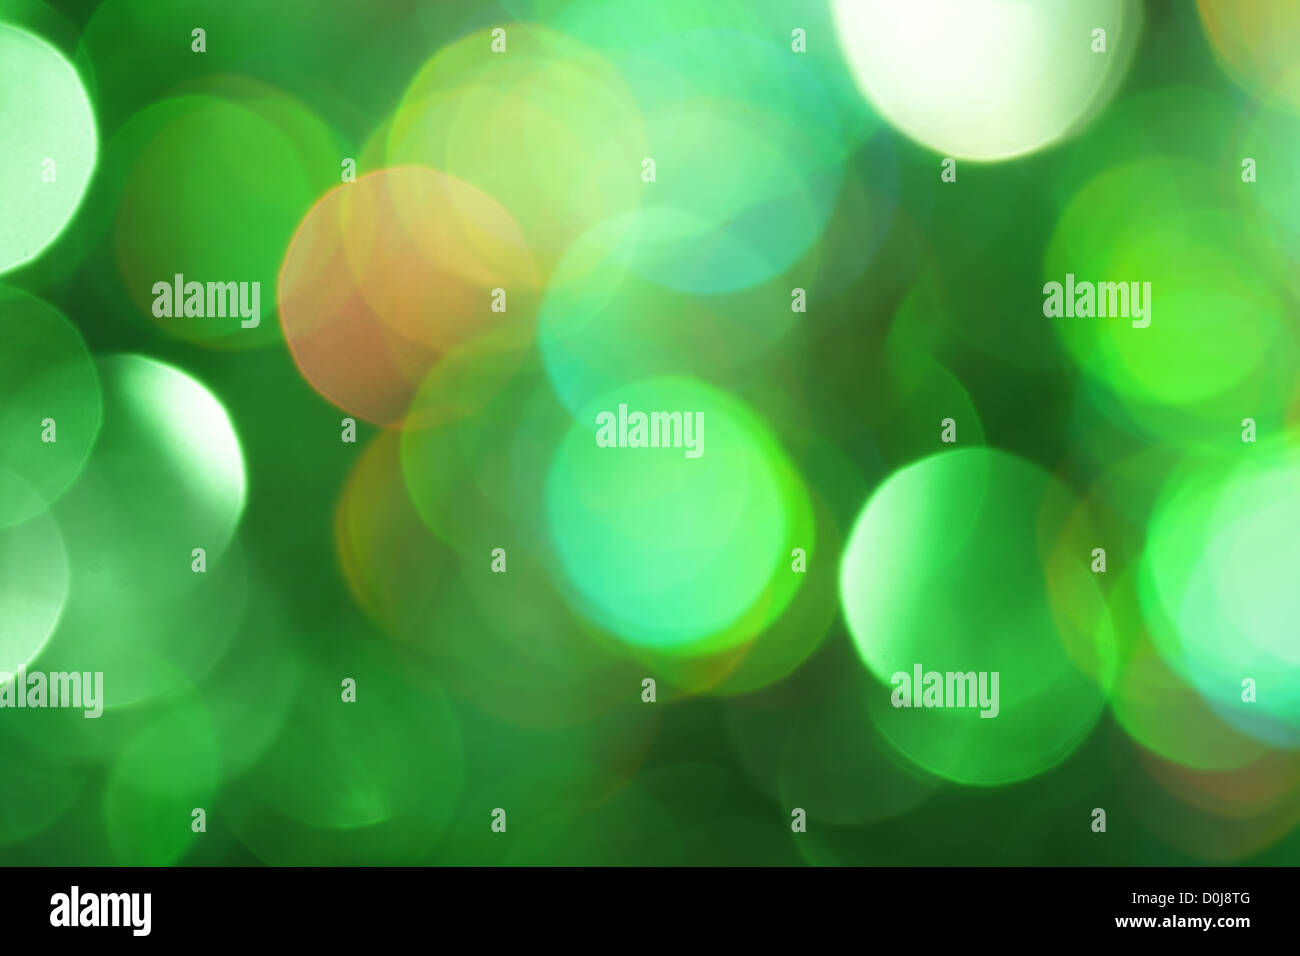 Abstract green light - Stock Image